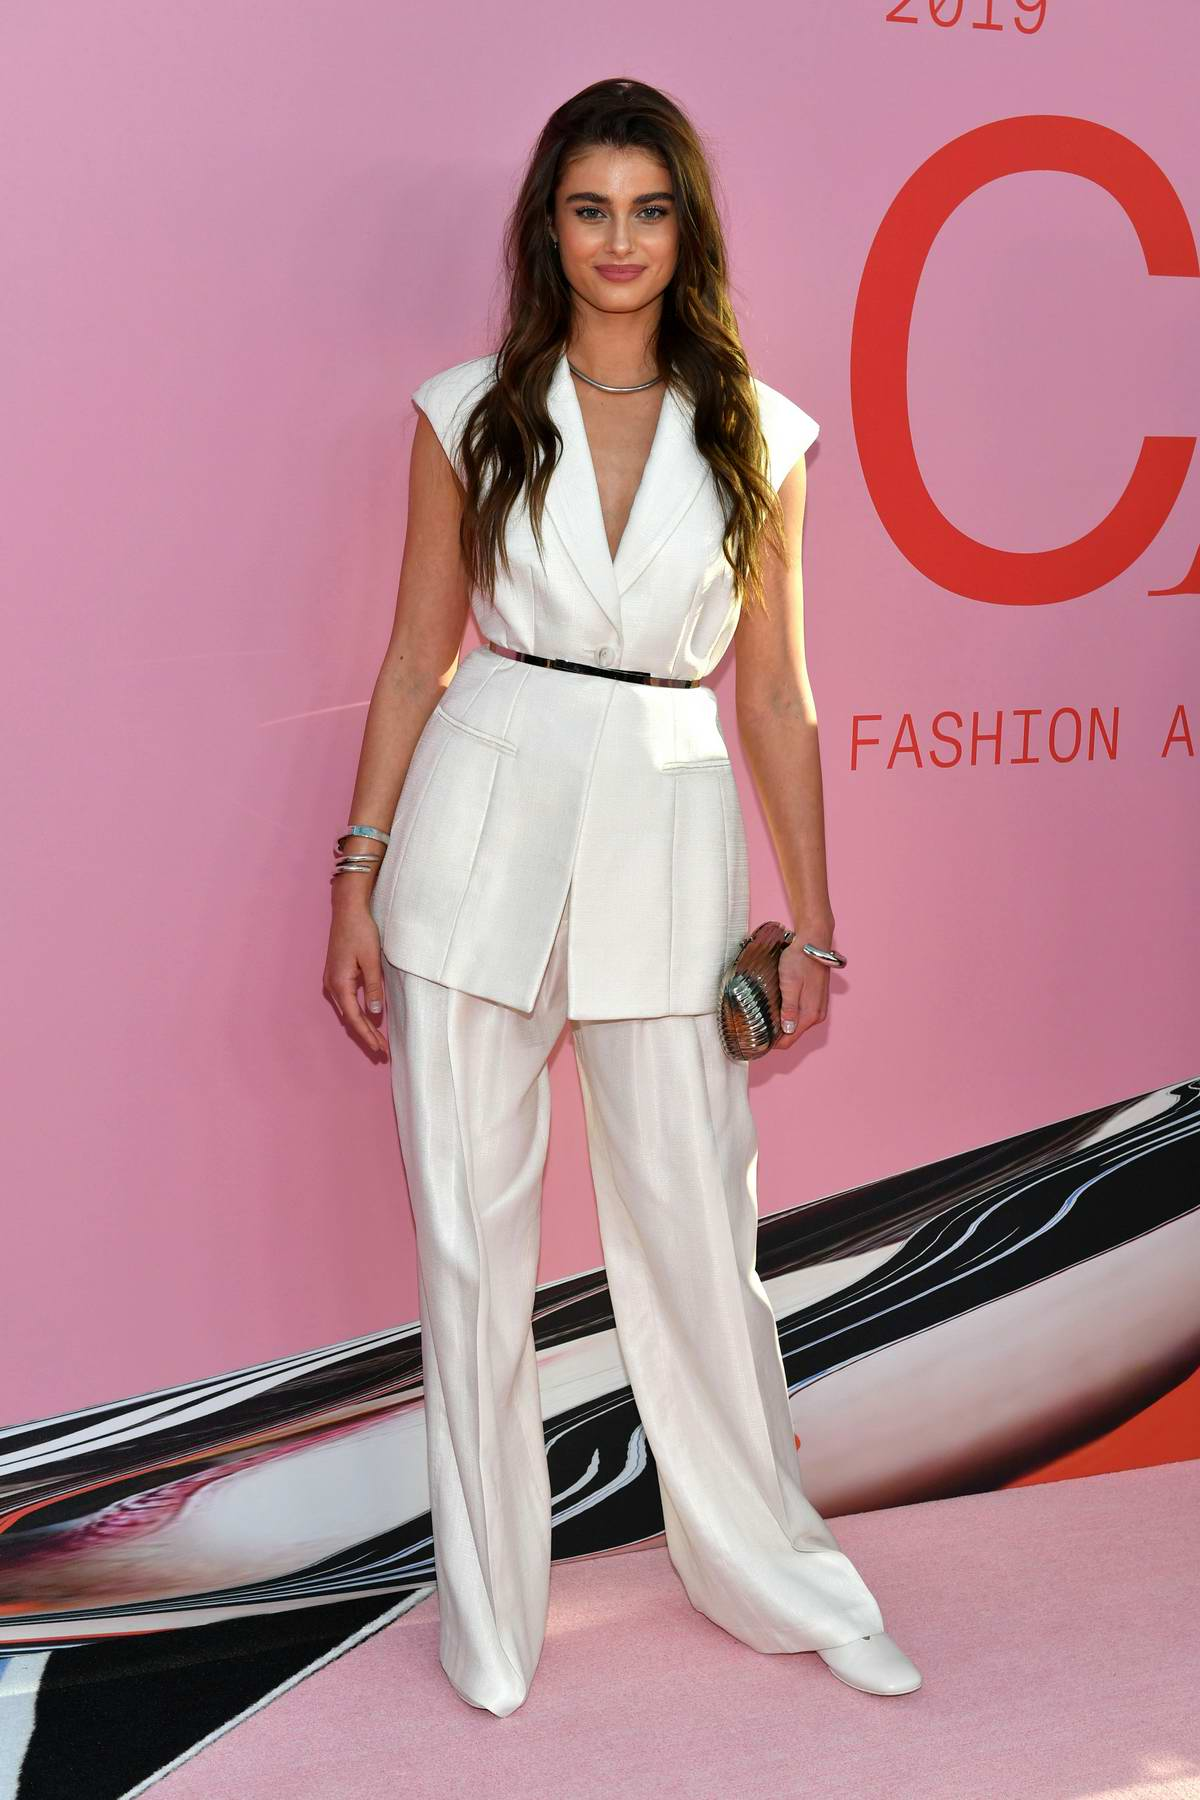 Taylor Hill attends the 2019 CFDA Fashion Awards at Brooklyn Museum in New York City